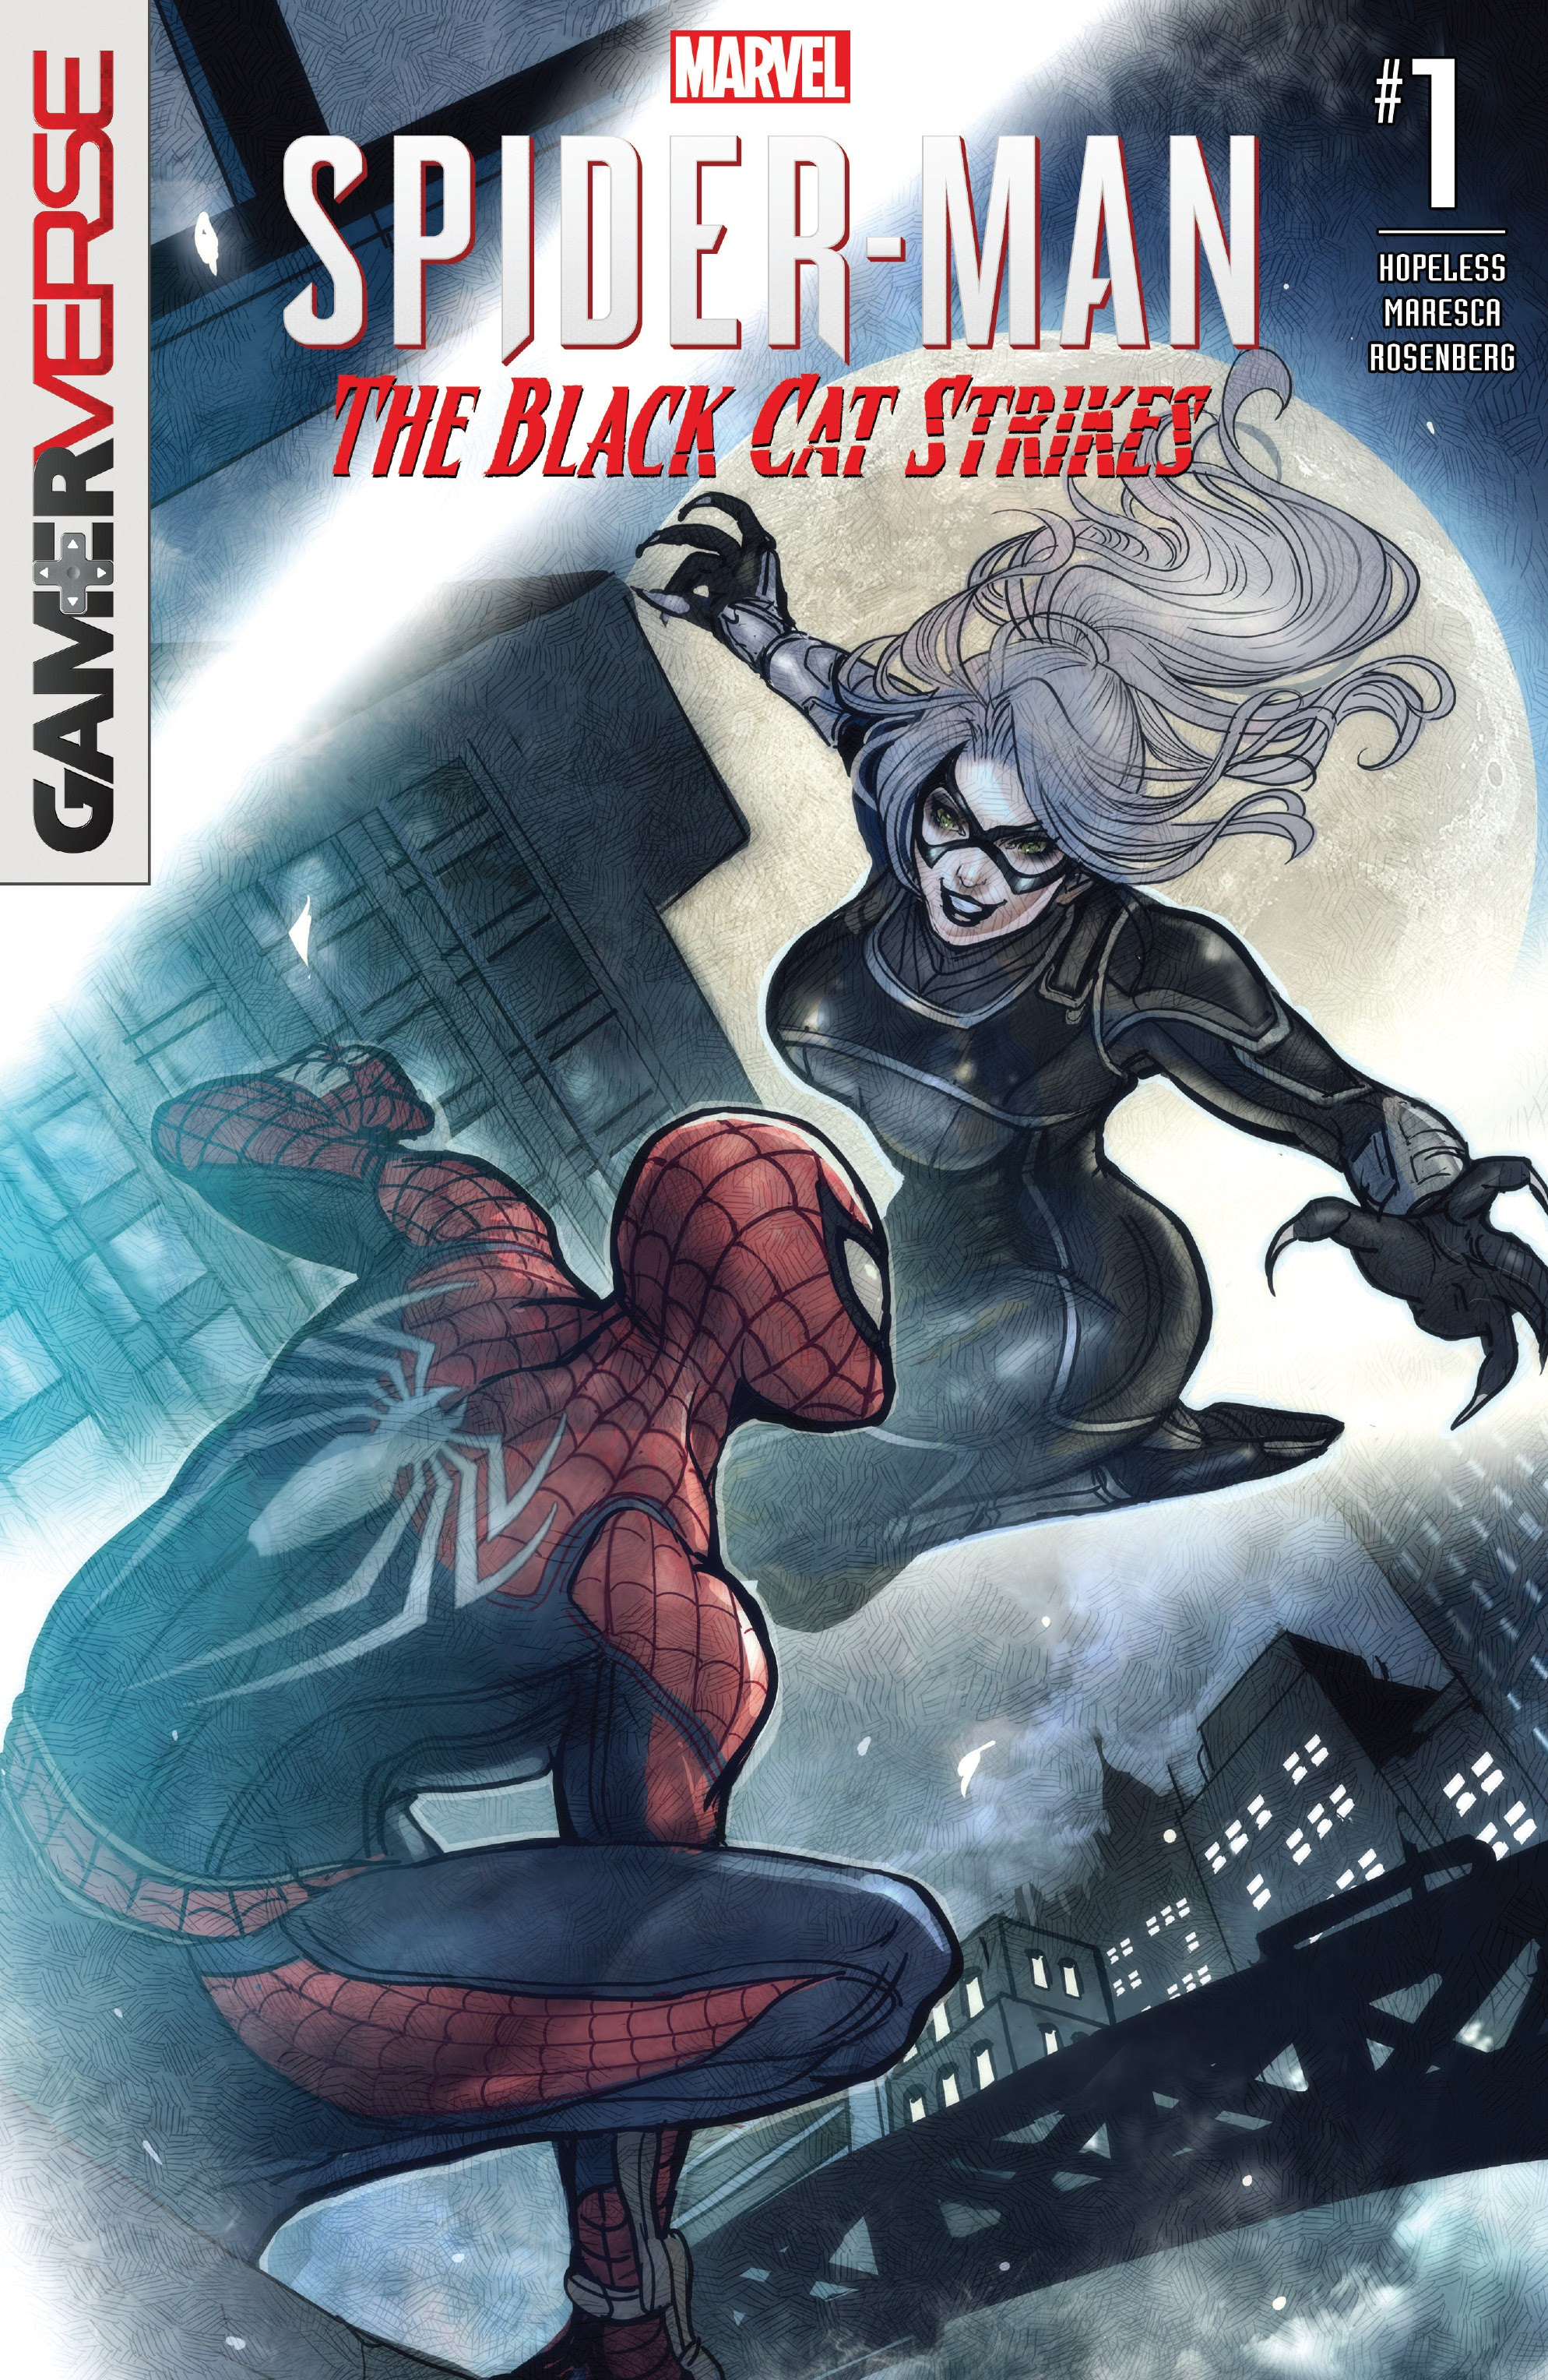 Marvels Spider-Man: The Black Cat Strikes 1 Page 1